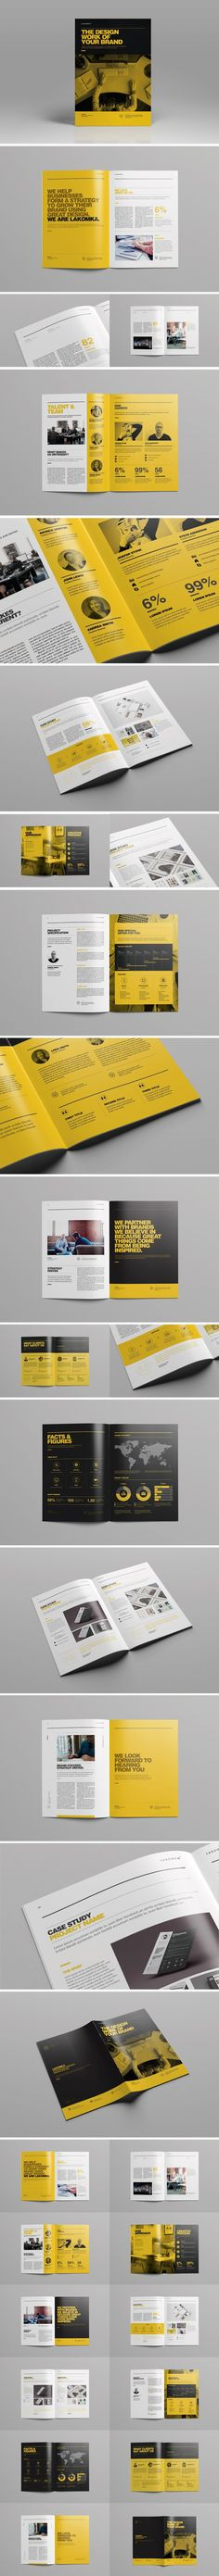 Boris Vargas is a Graphic Designer currently based in Buenos Aires, Argentina. Template Brochure, Design Brochure, Brochure Layout, Graphic Design Print, Graphic Design Branding, Corporate Design, Corporate Strategy, Editorial Design, Editorial Layout